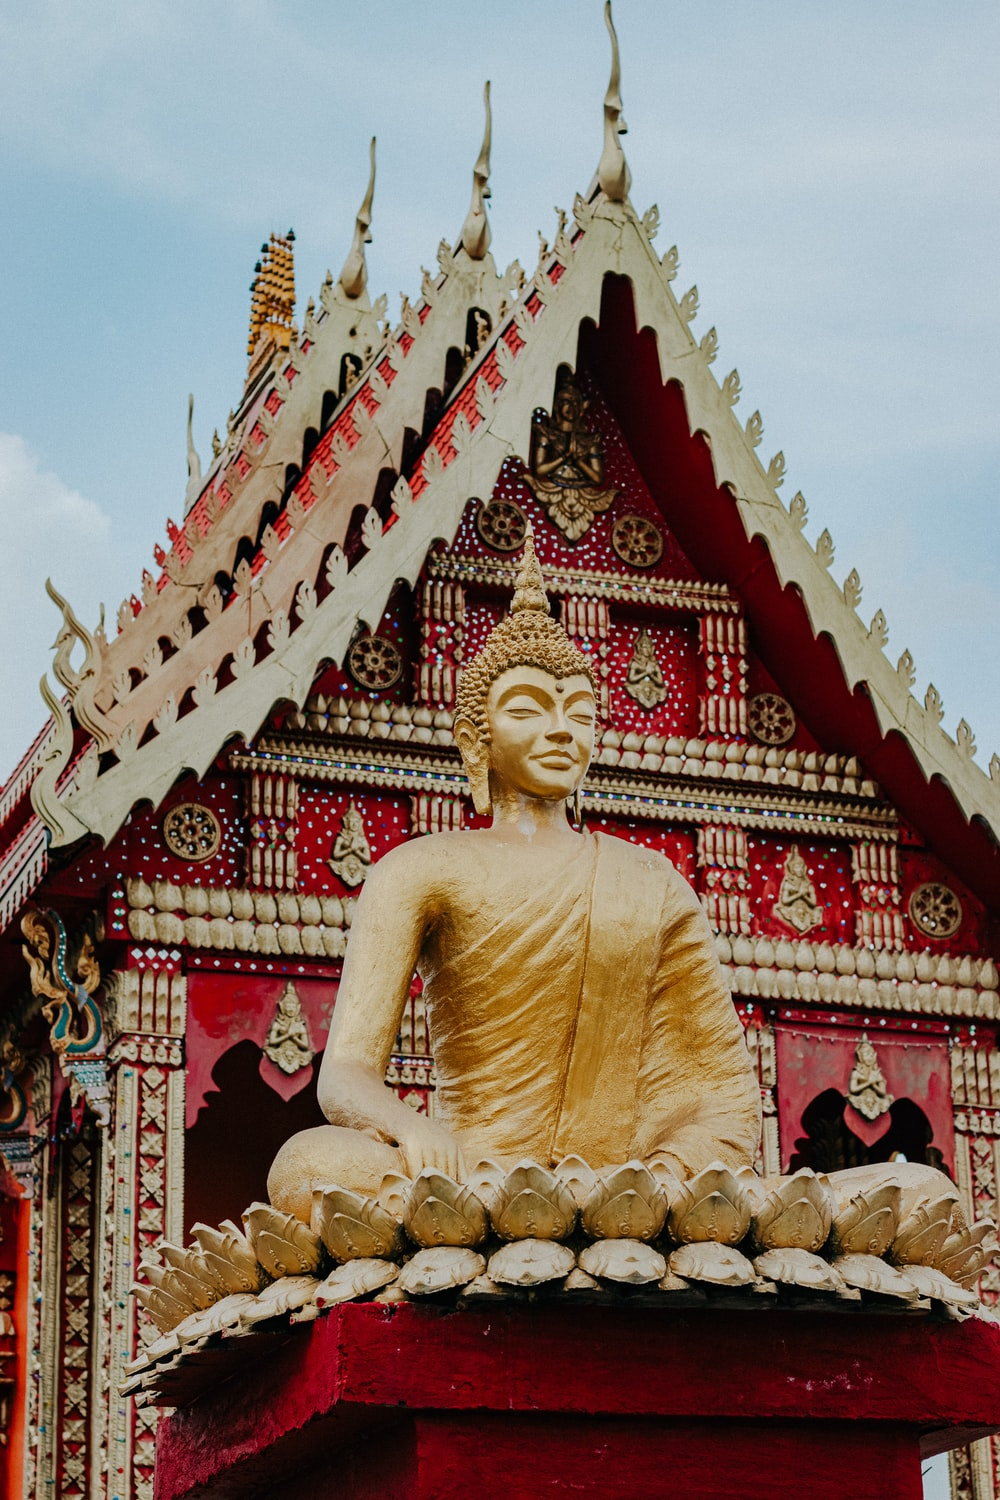 gold buddha statue near red and gold temple during daytime